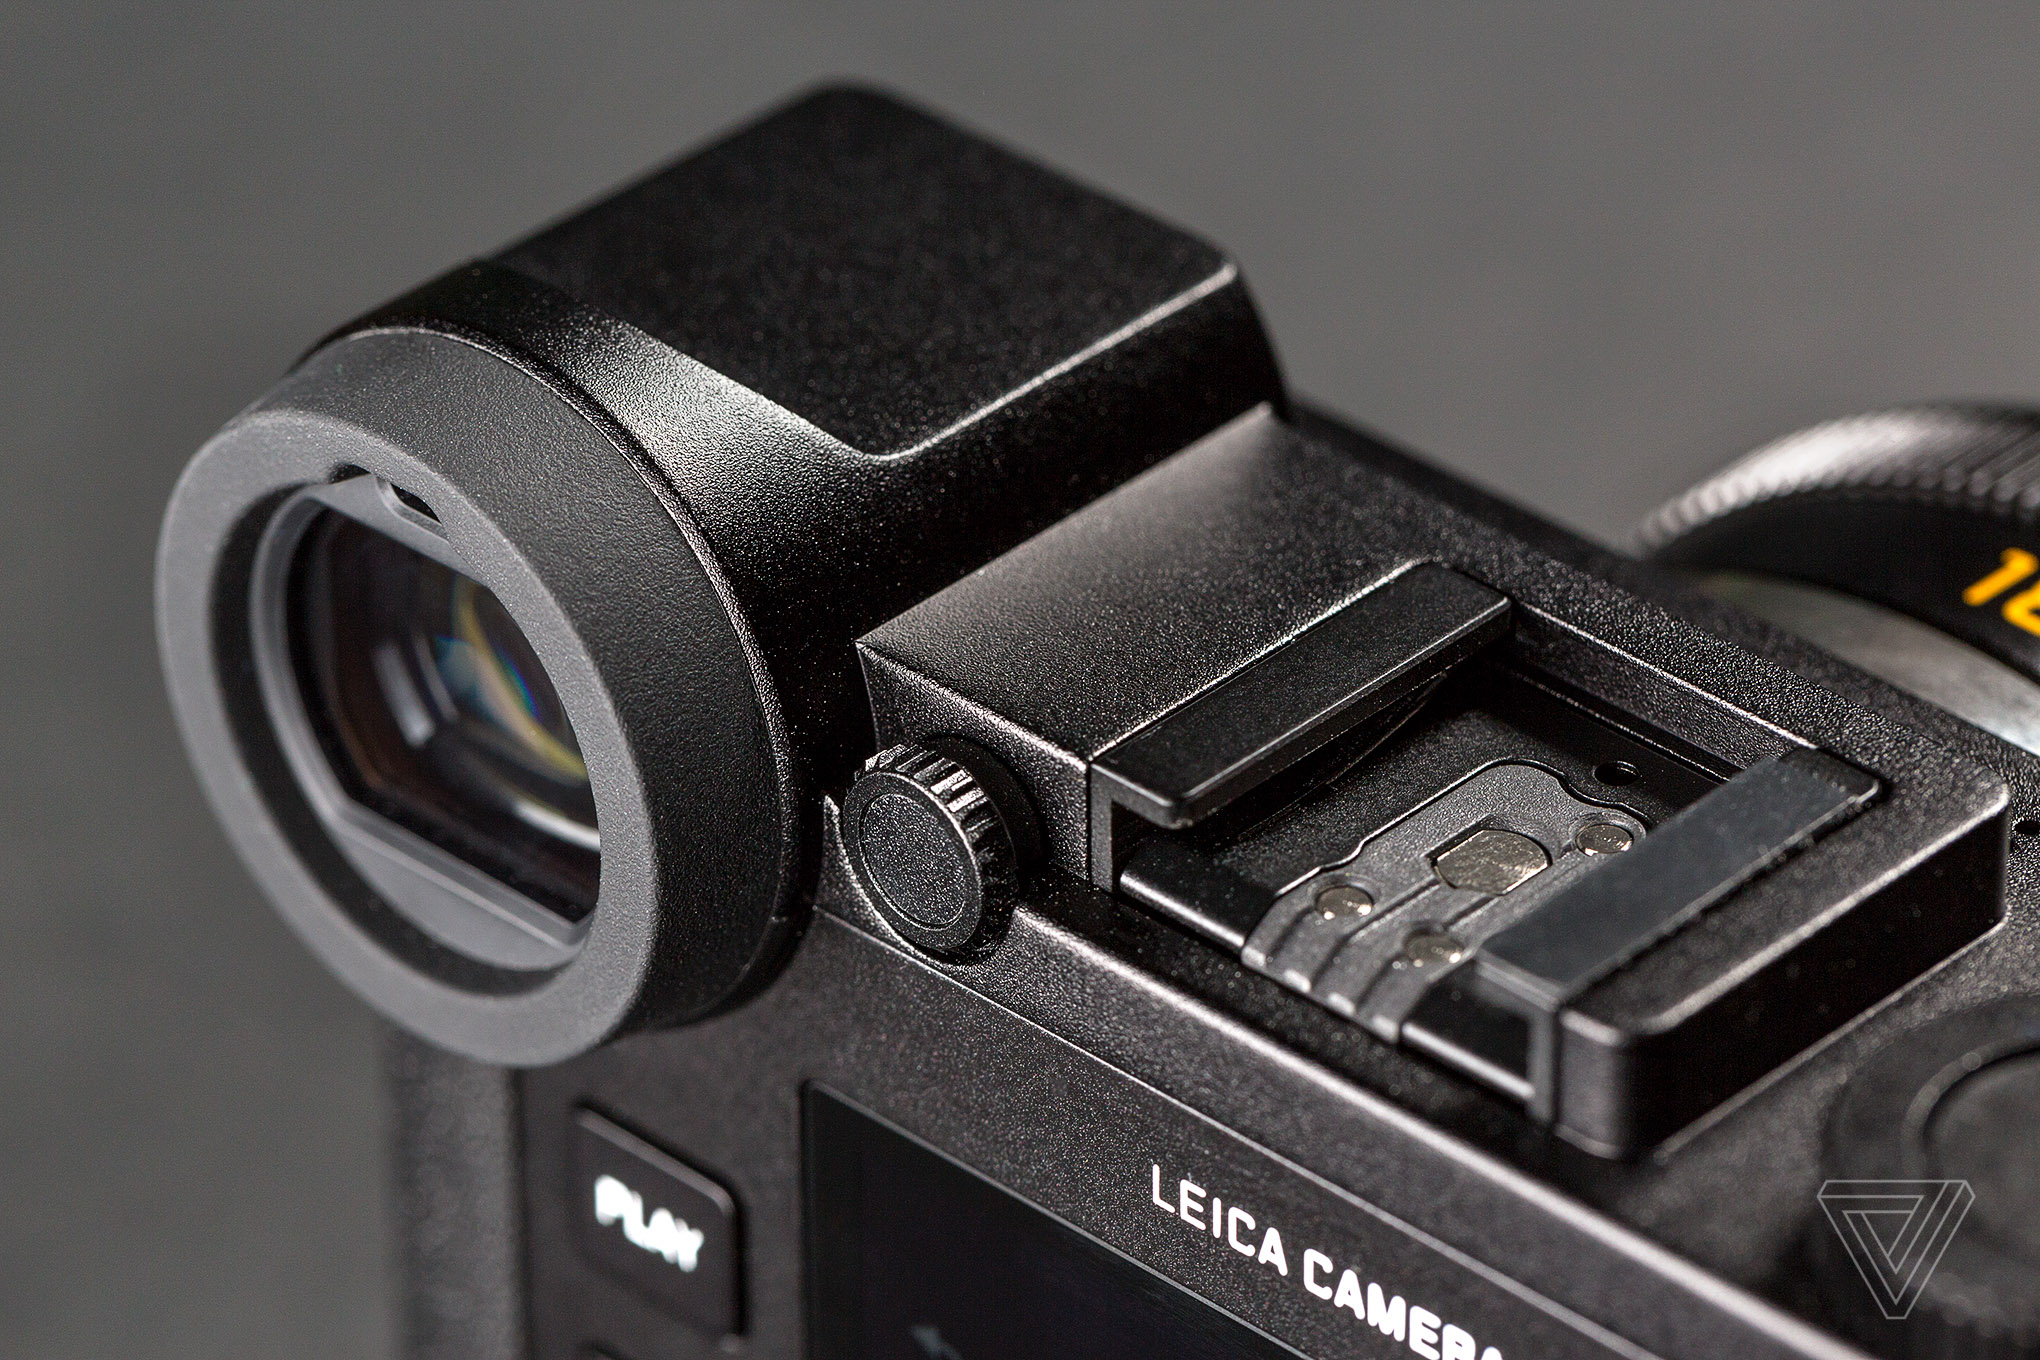 Leica CL Camera Review - Leica Review - Reviewed by Oz Yilmaz